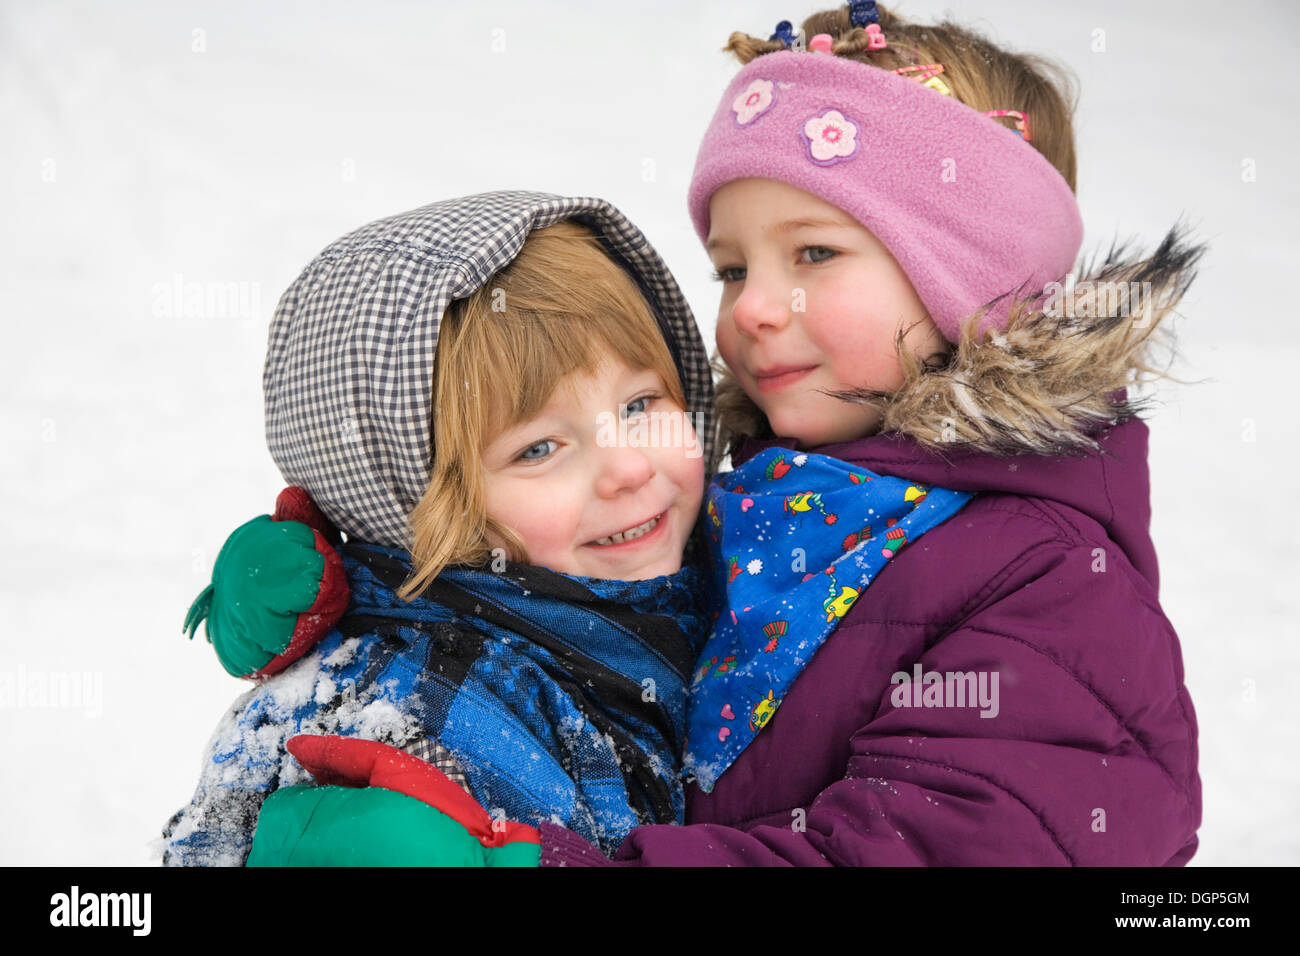 Two sisters hugging each other - Stock Image